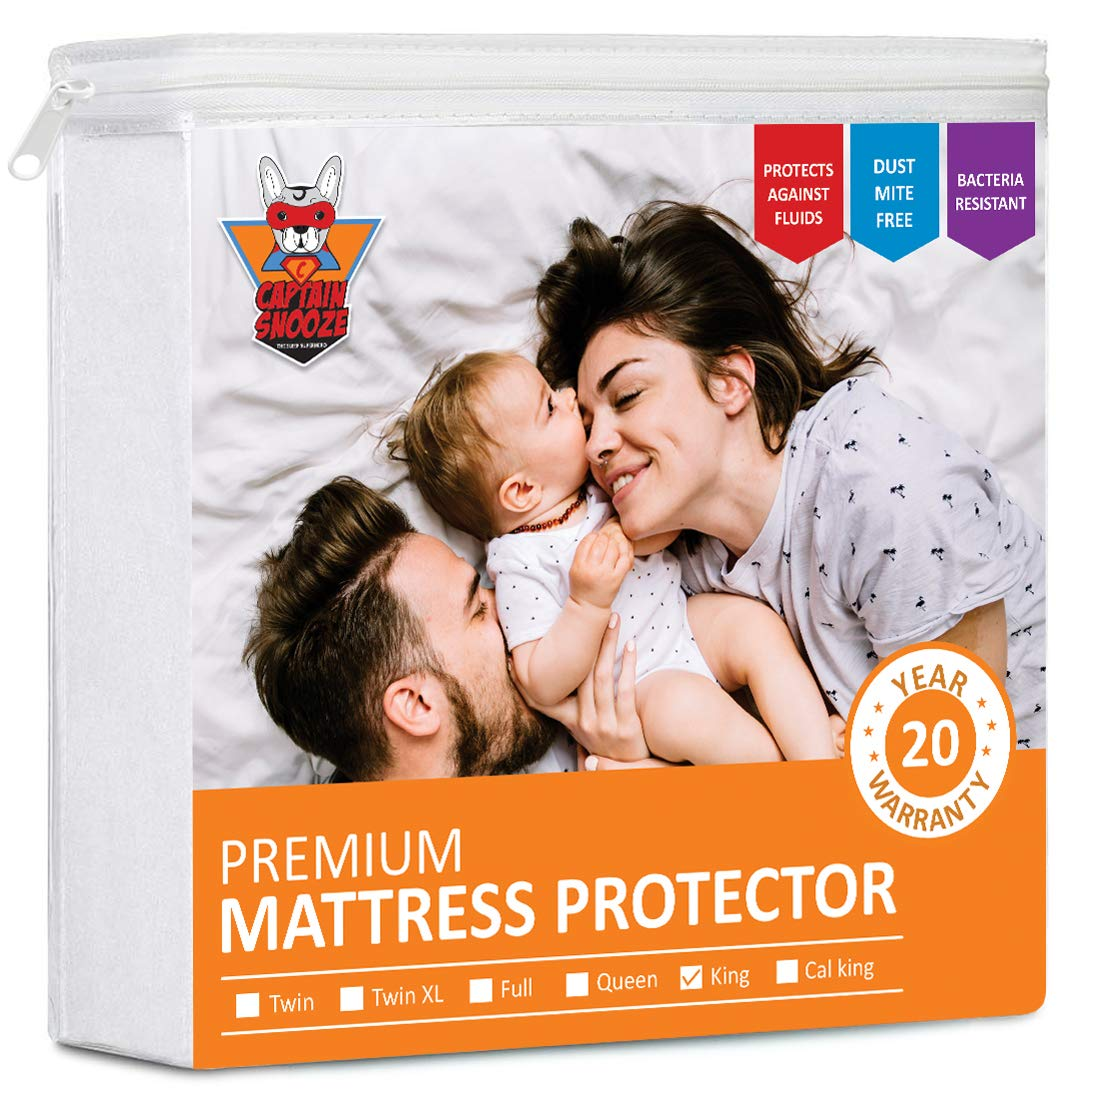 CAPTAIN SNOOZE Mattress Protector King Size Waterproof, Fitted Sheet Mattress Protector Upto 18 inches deep Pocket, Cotton Terry Surface, Vinyl Free, Premium King Mattress Protector